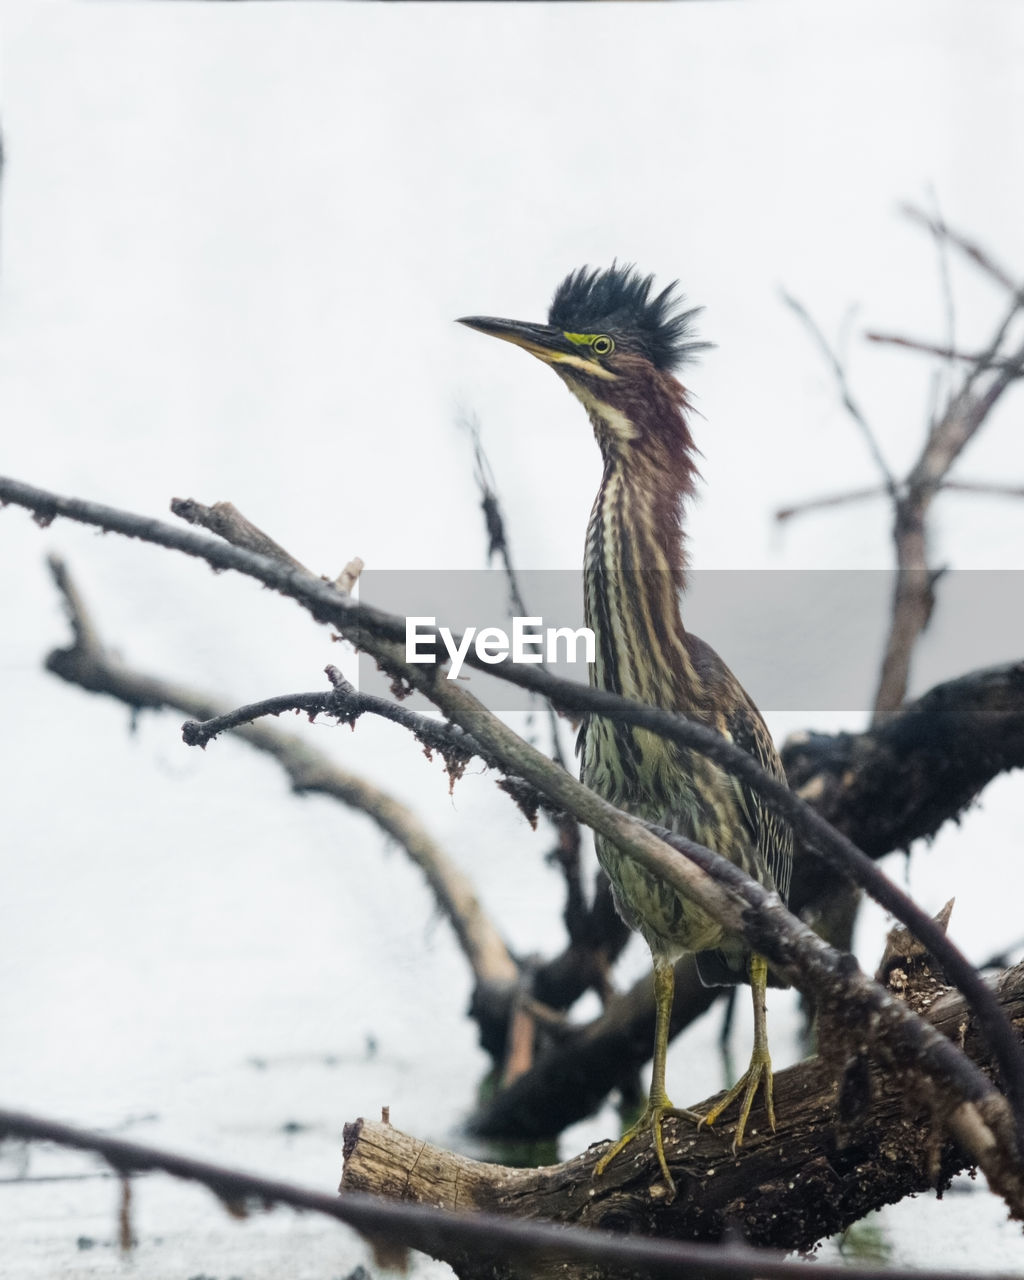 bird, vertebrate, one animal, animals in the wild, animal themes, animal wildlife, animal, perching, branch, tree, plant, focus on foreground, nature, no people, day, cold temperature, winter, snow, beak, outdoors